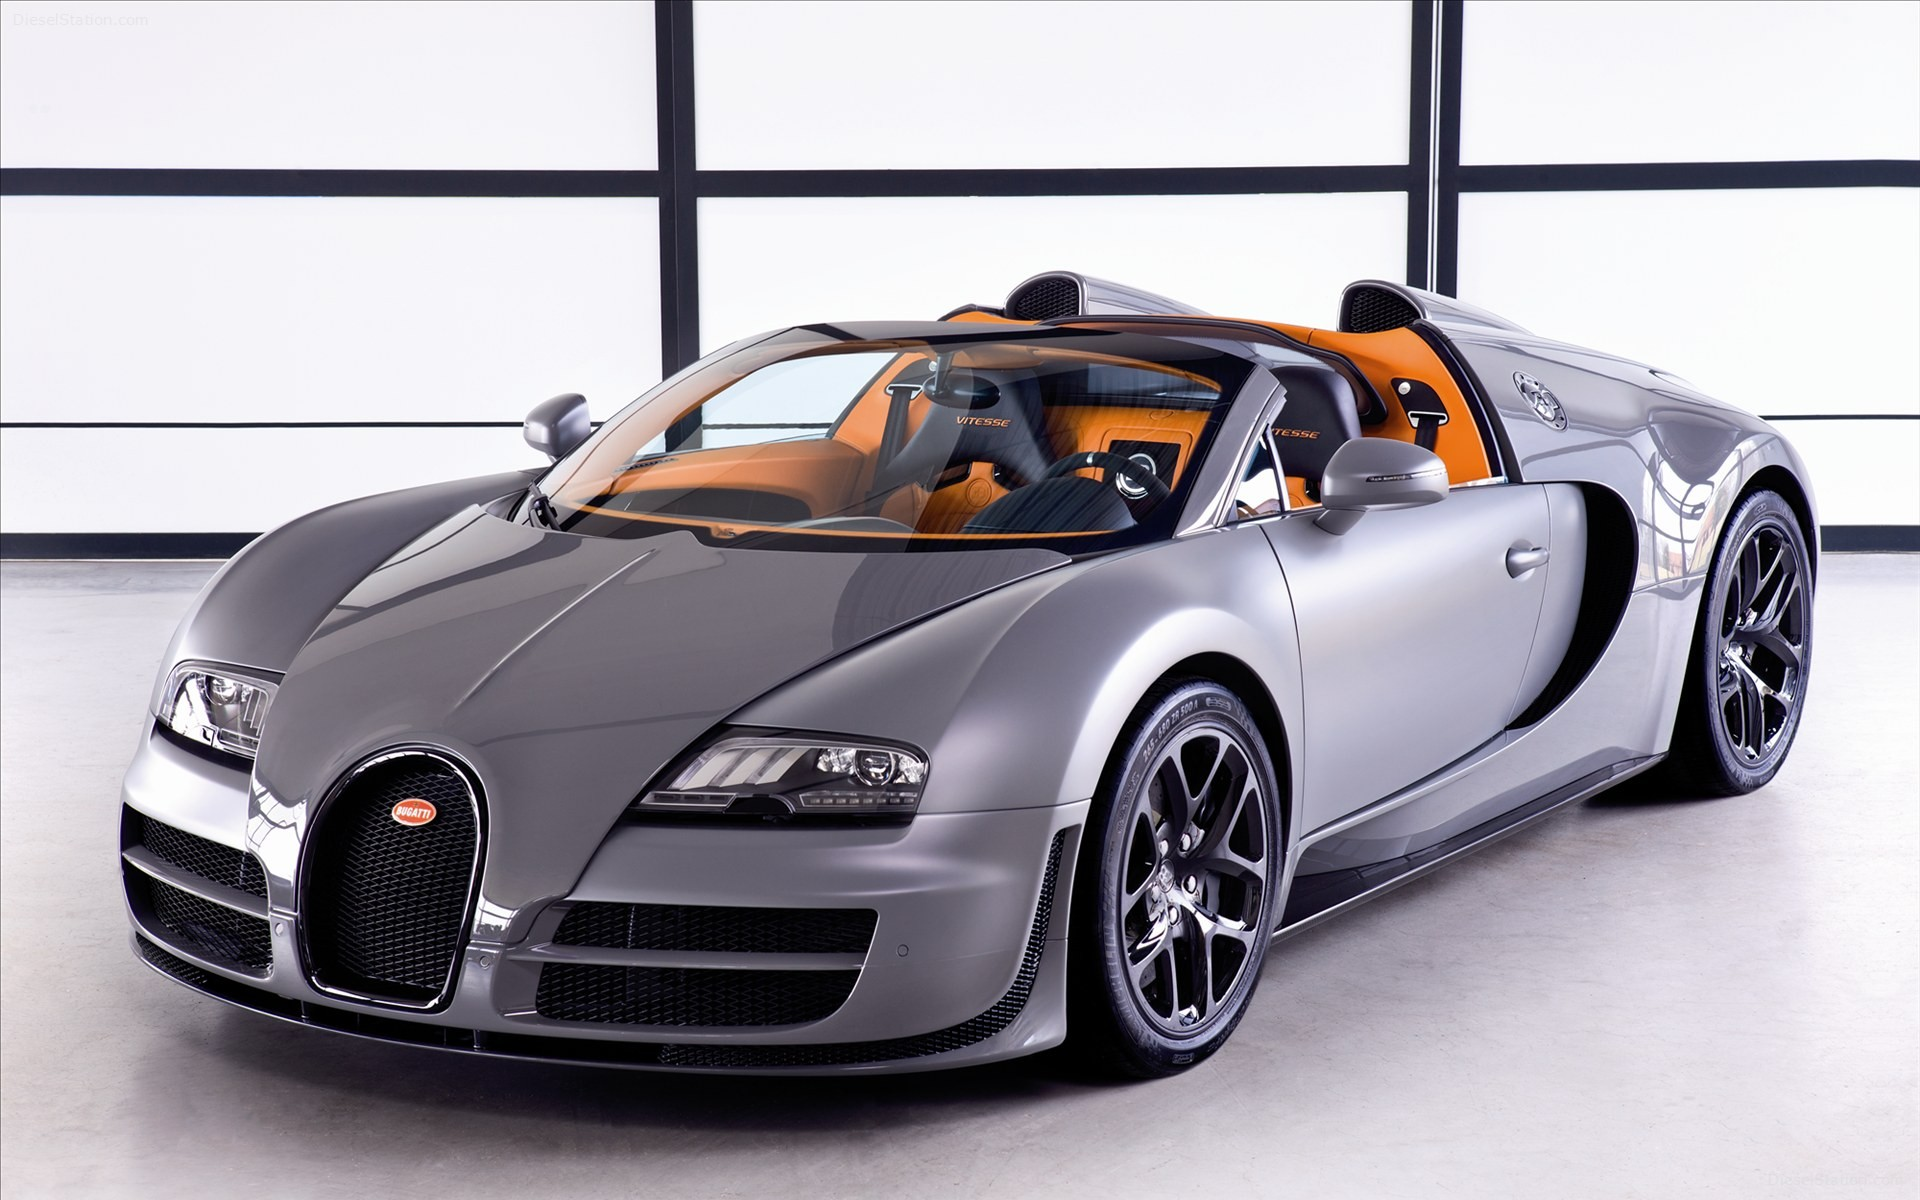 Wallpaper Bugatti Veyron Grand Sport: Bugatti Veyron Grand Sport Vitesse 2012 Wallpaper